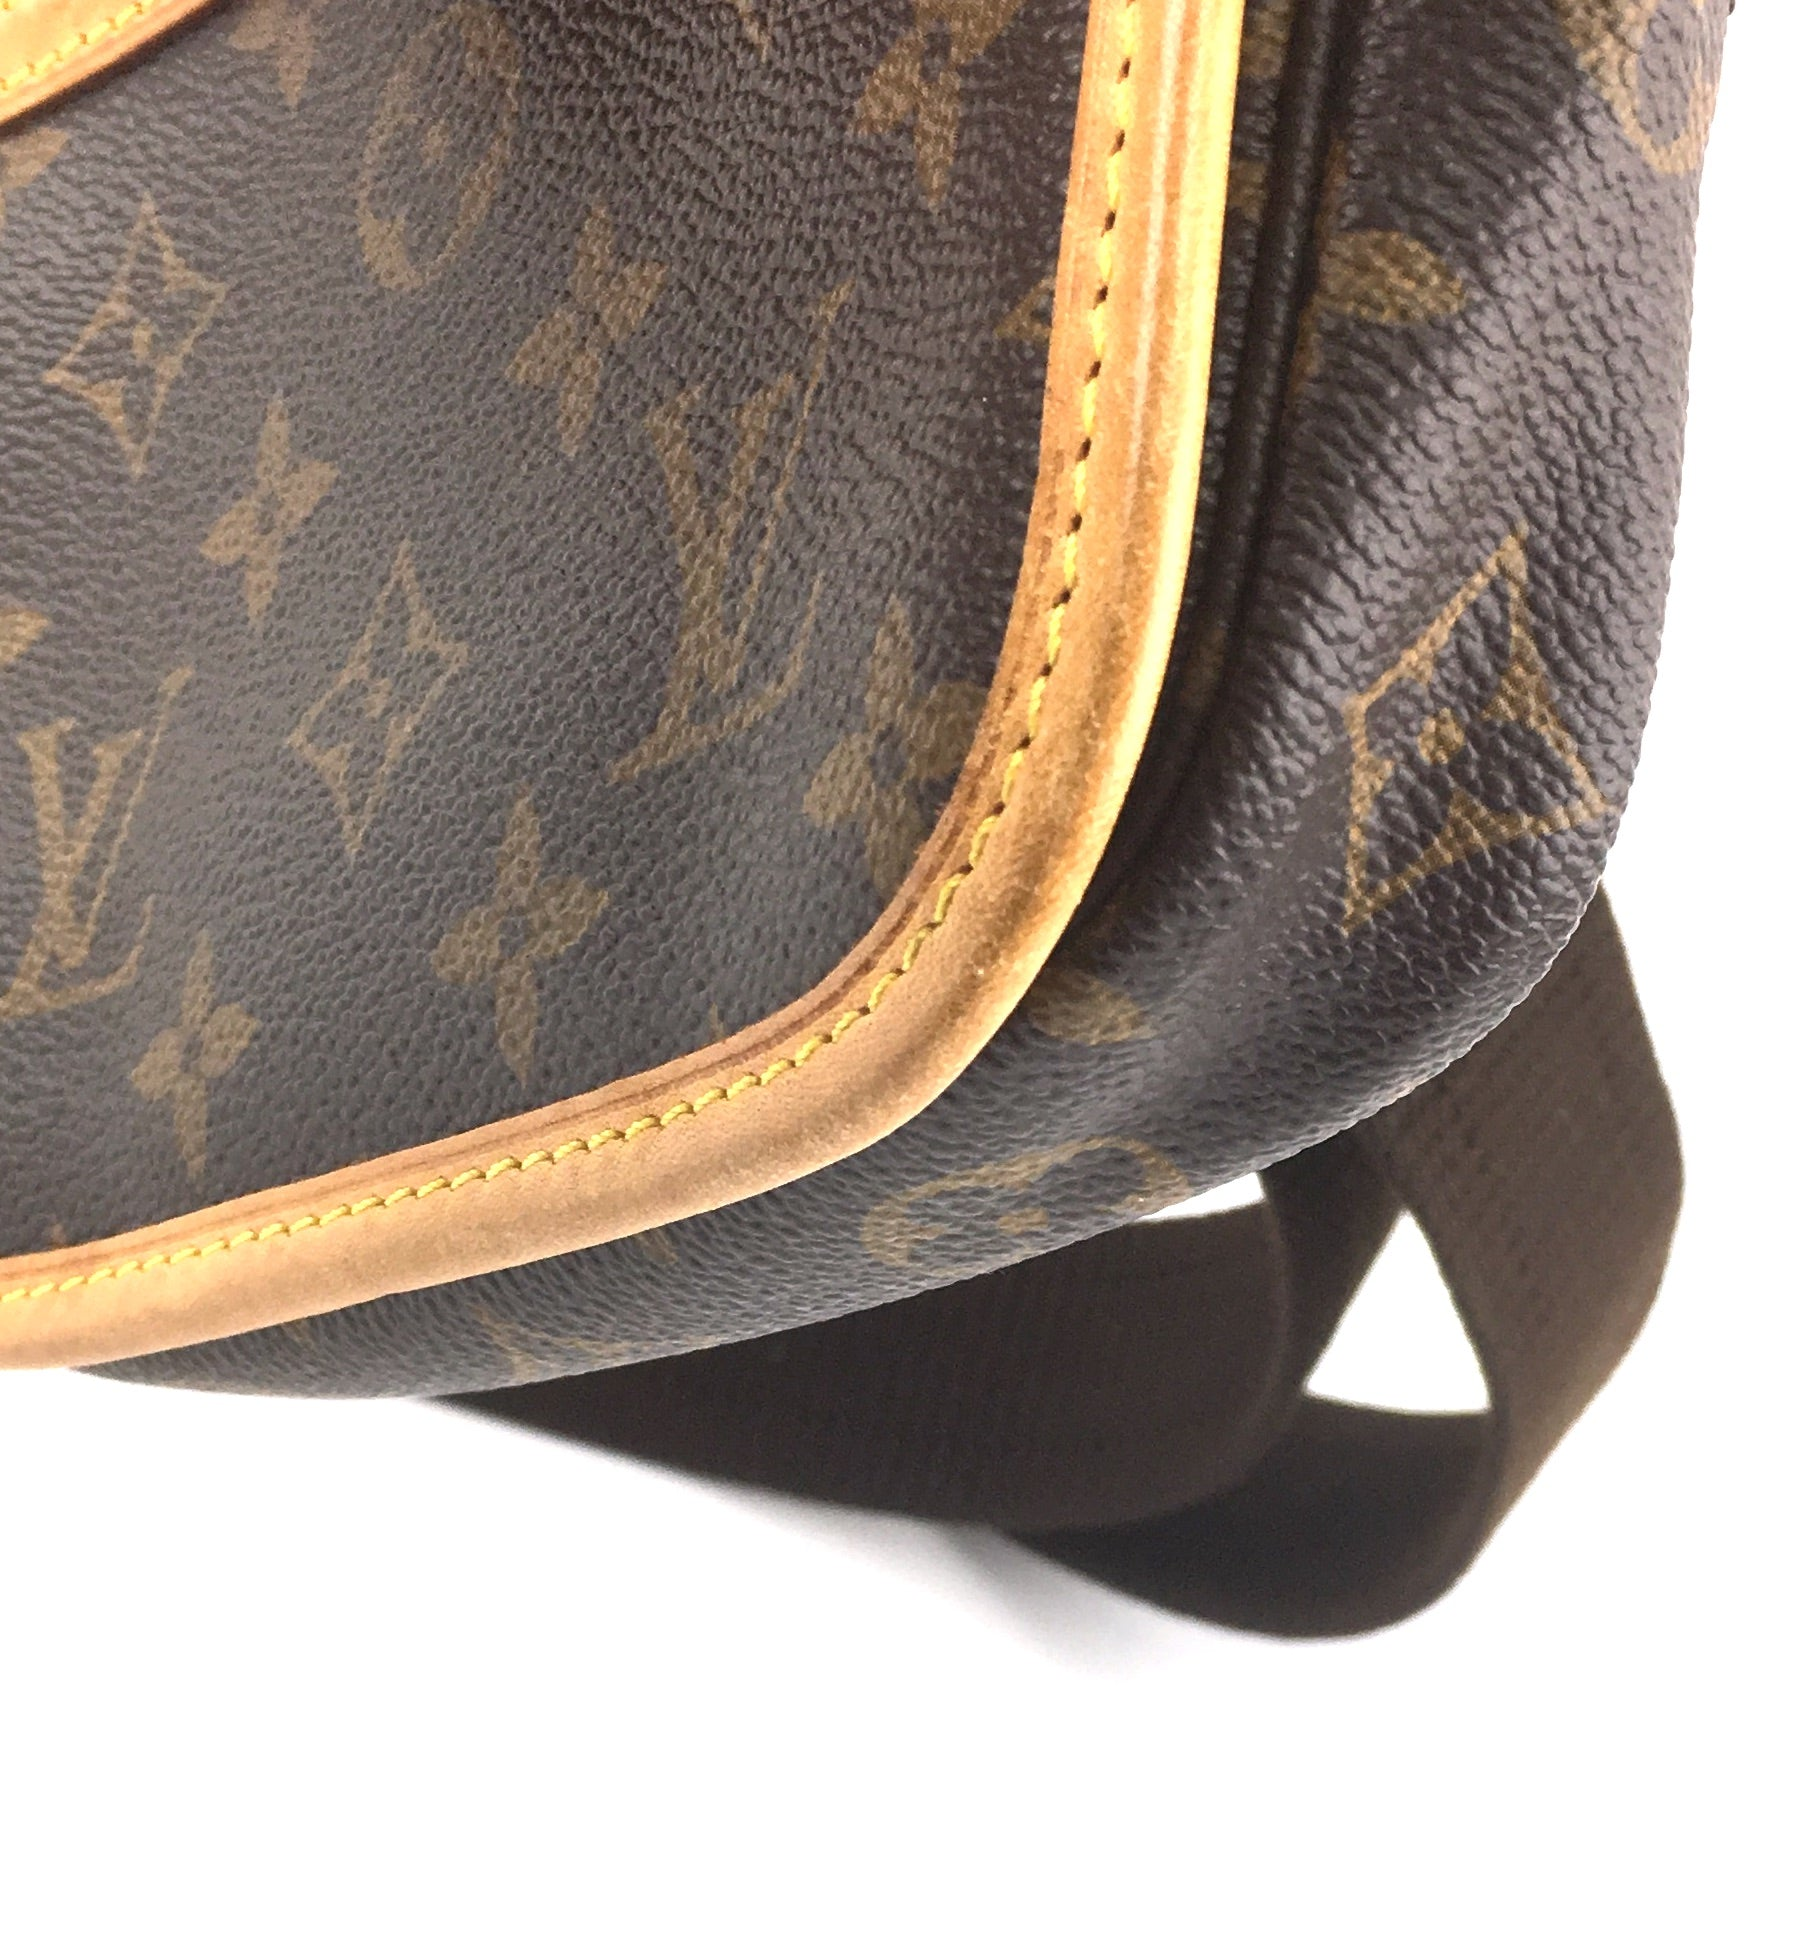 Louis Vuitton Bosphore Bumbag Monogram Canvas